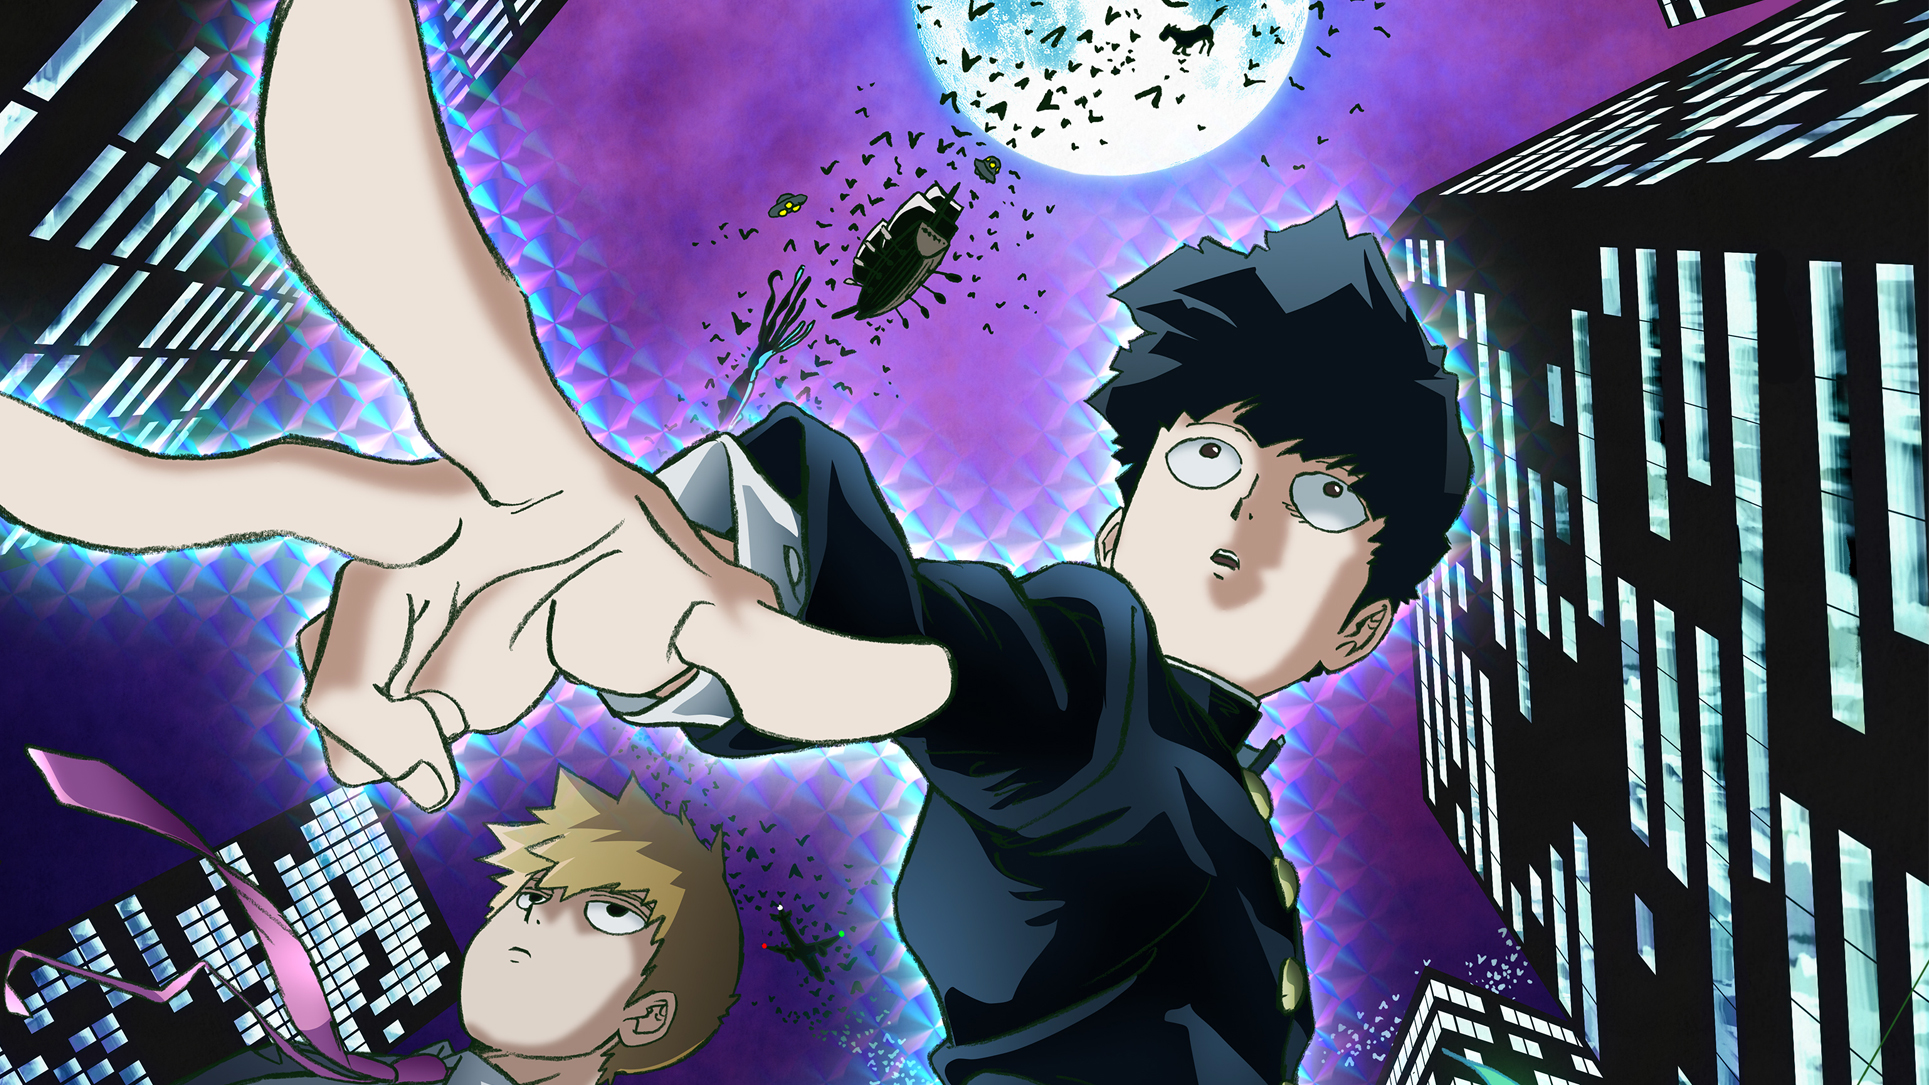 Mob Psycho 100 Gets A Season 2 Cat With Monocle